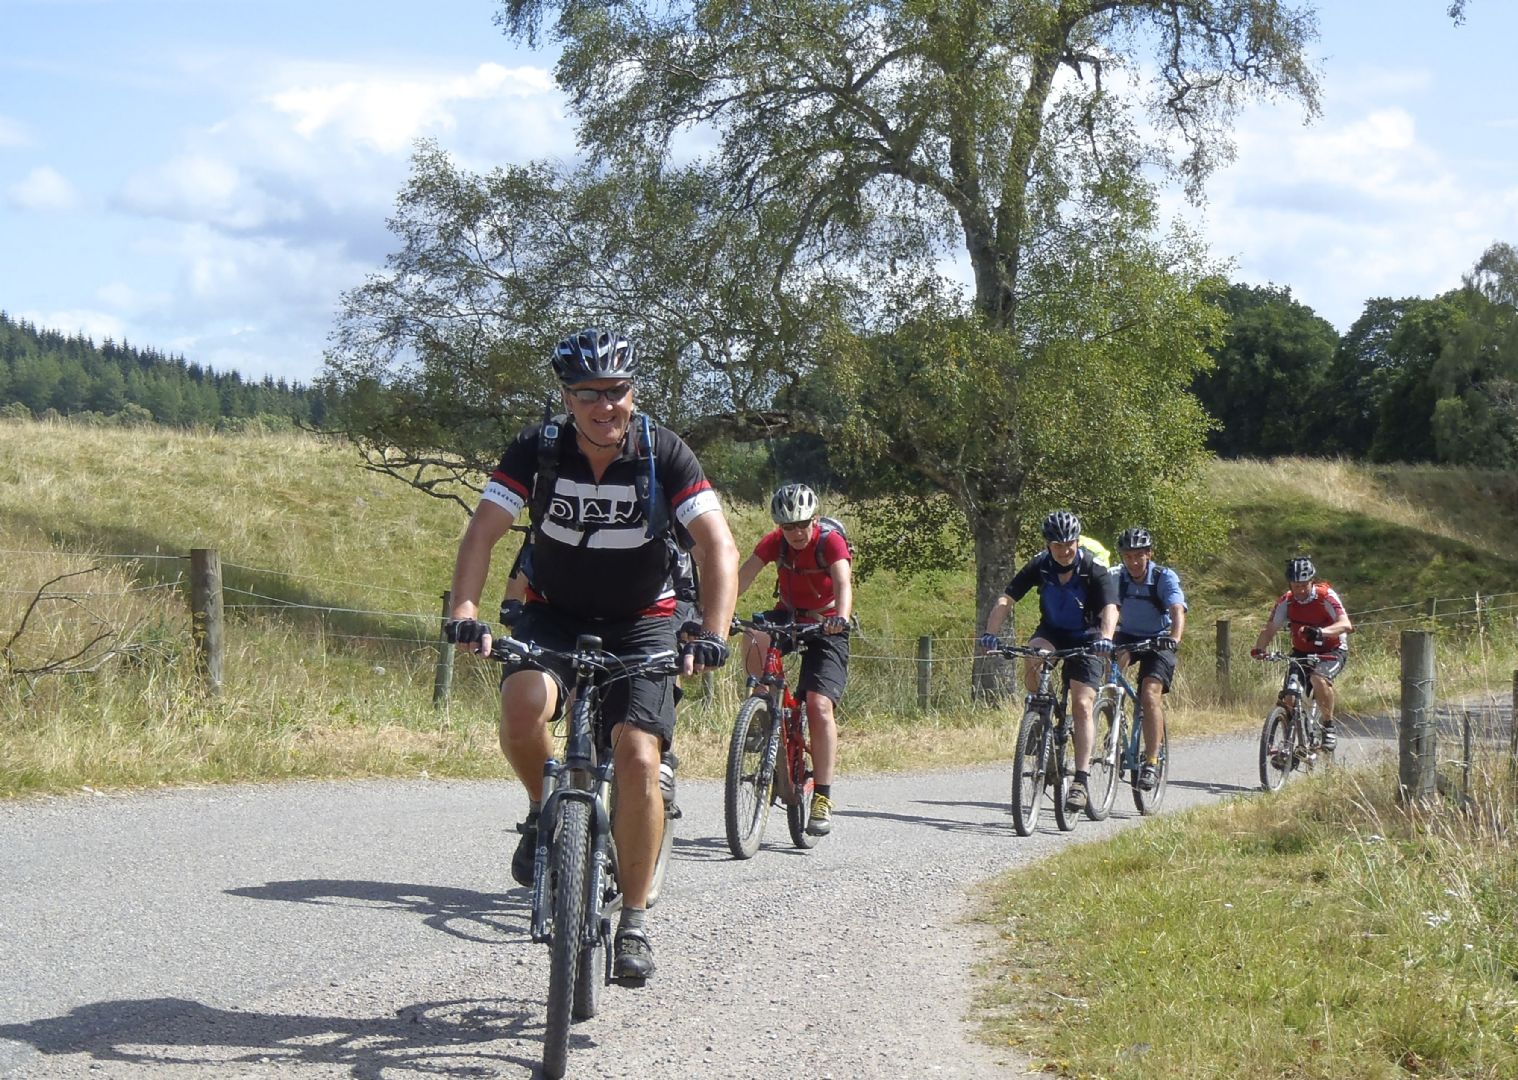 guided-cycling-adventure-scottish-highlands.jpg - Scotland - Celtic Crossing - Guided Mountain Bike Holiday - Mountain Biking